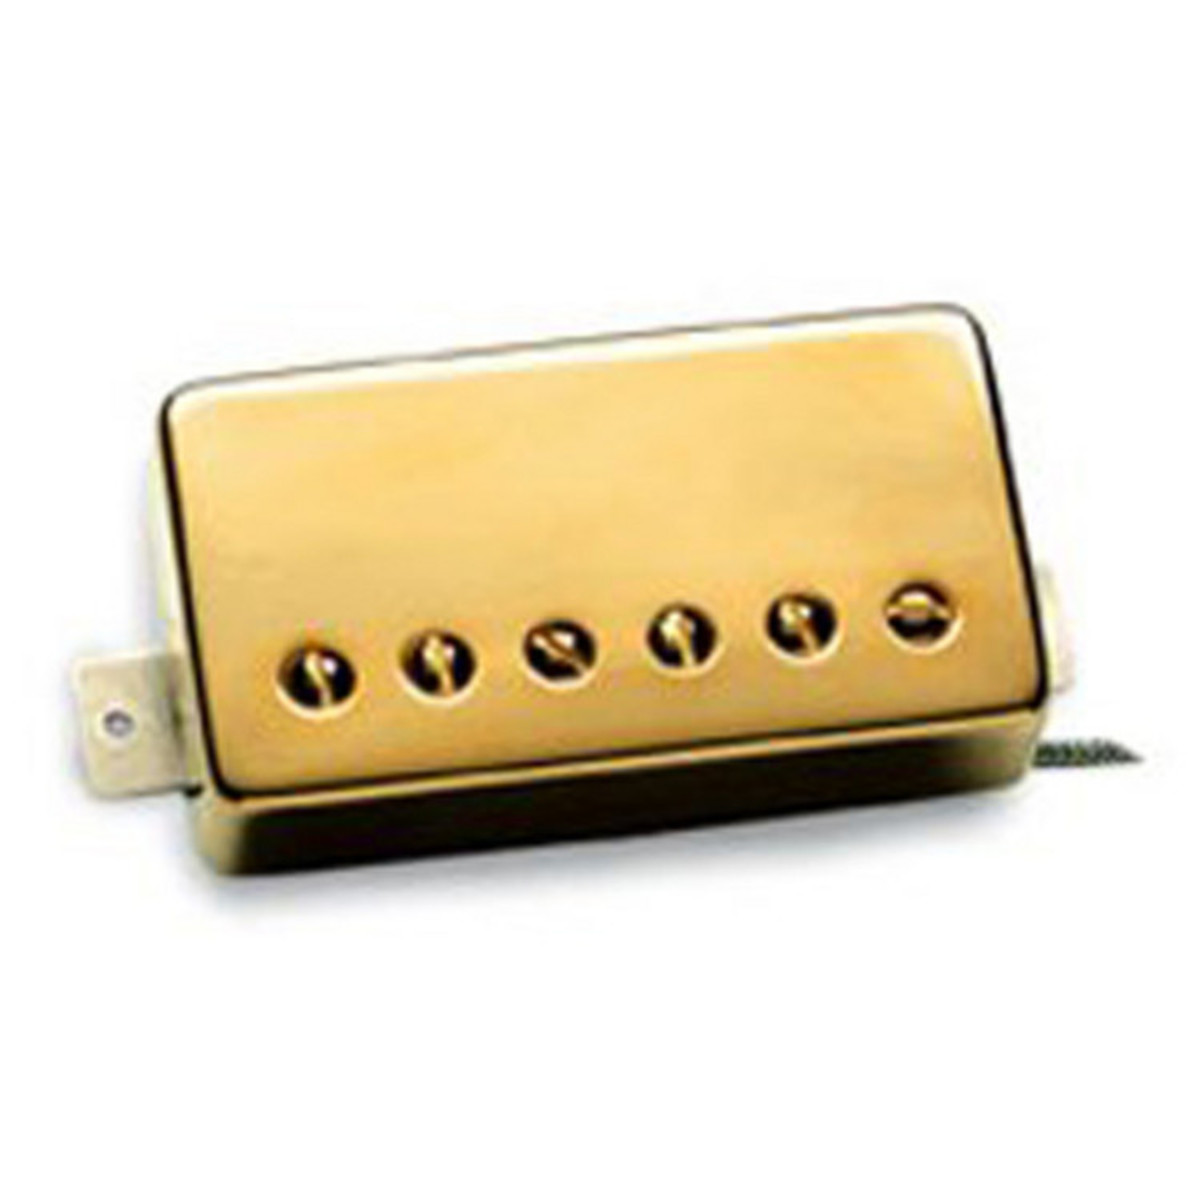 Seymour Duncan Sh 55 Seth Lover Bridge Pickup Gold 4 Conductor